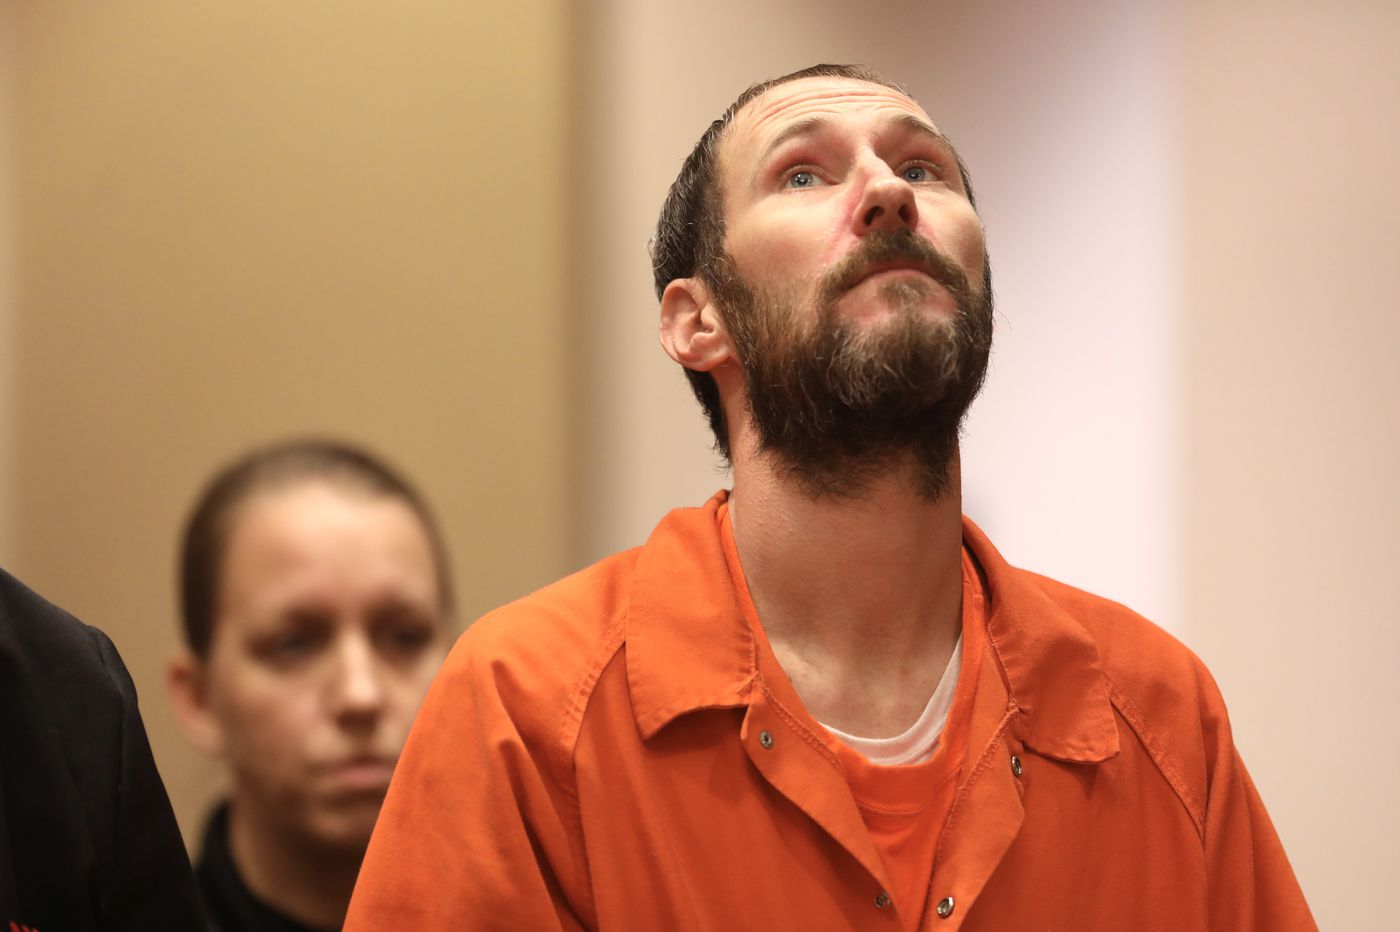 Johnny Bobbitt, accused in $400,000 GoFundMe scam, released from jail